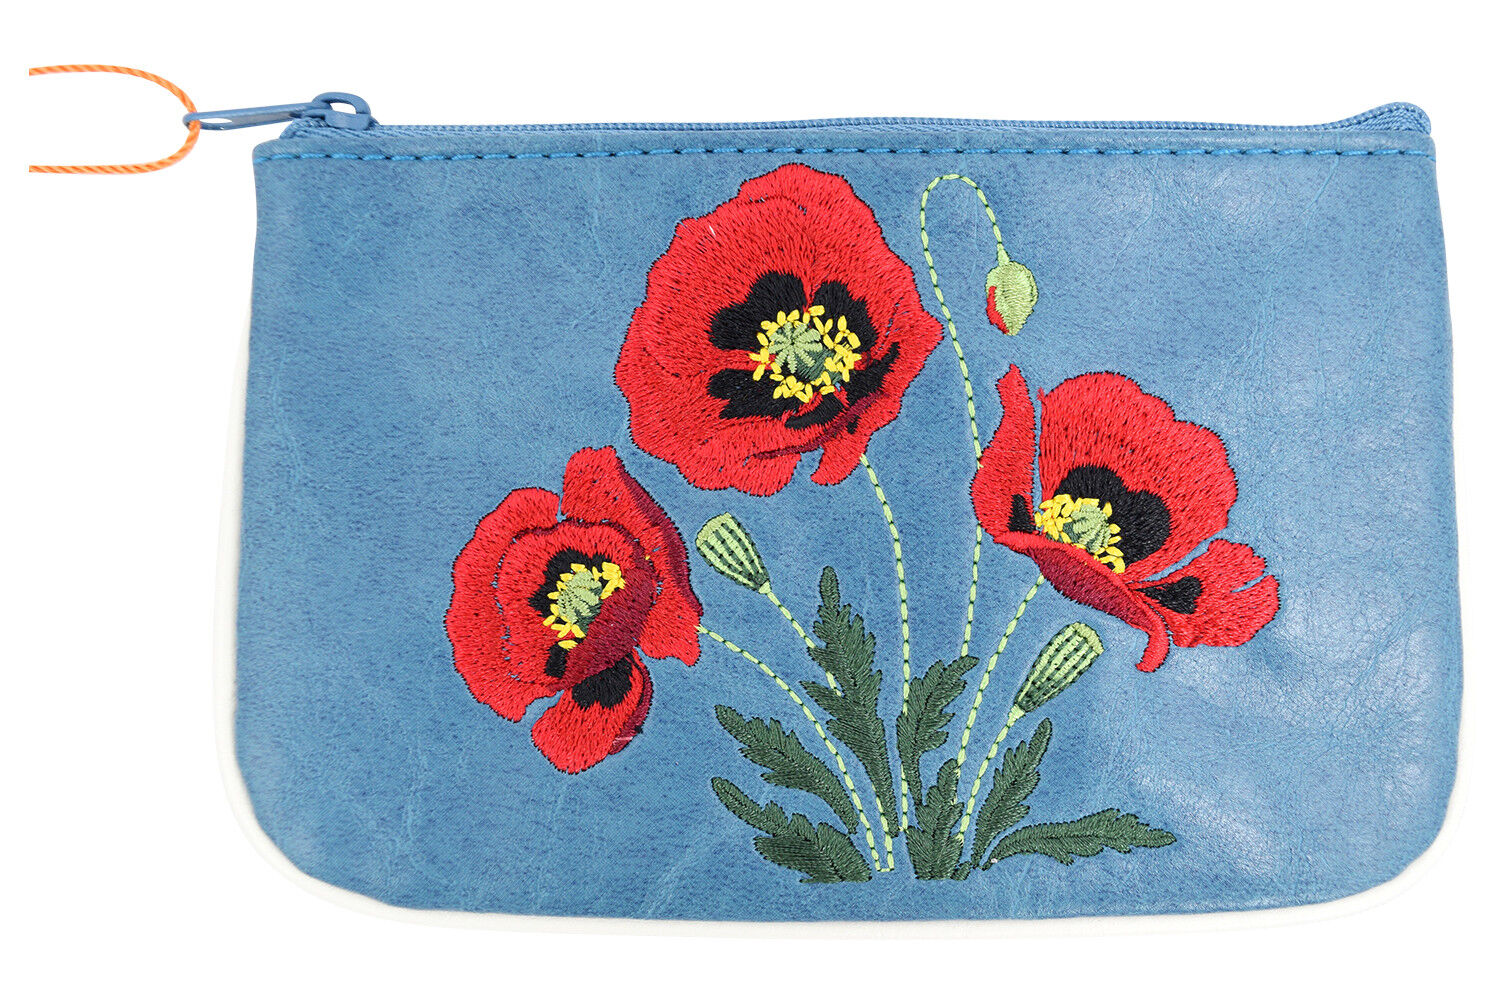 Lavishy Red Poppy Flower Embroidered Small Flat Coin Pouch Coin Purse